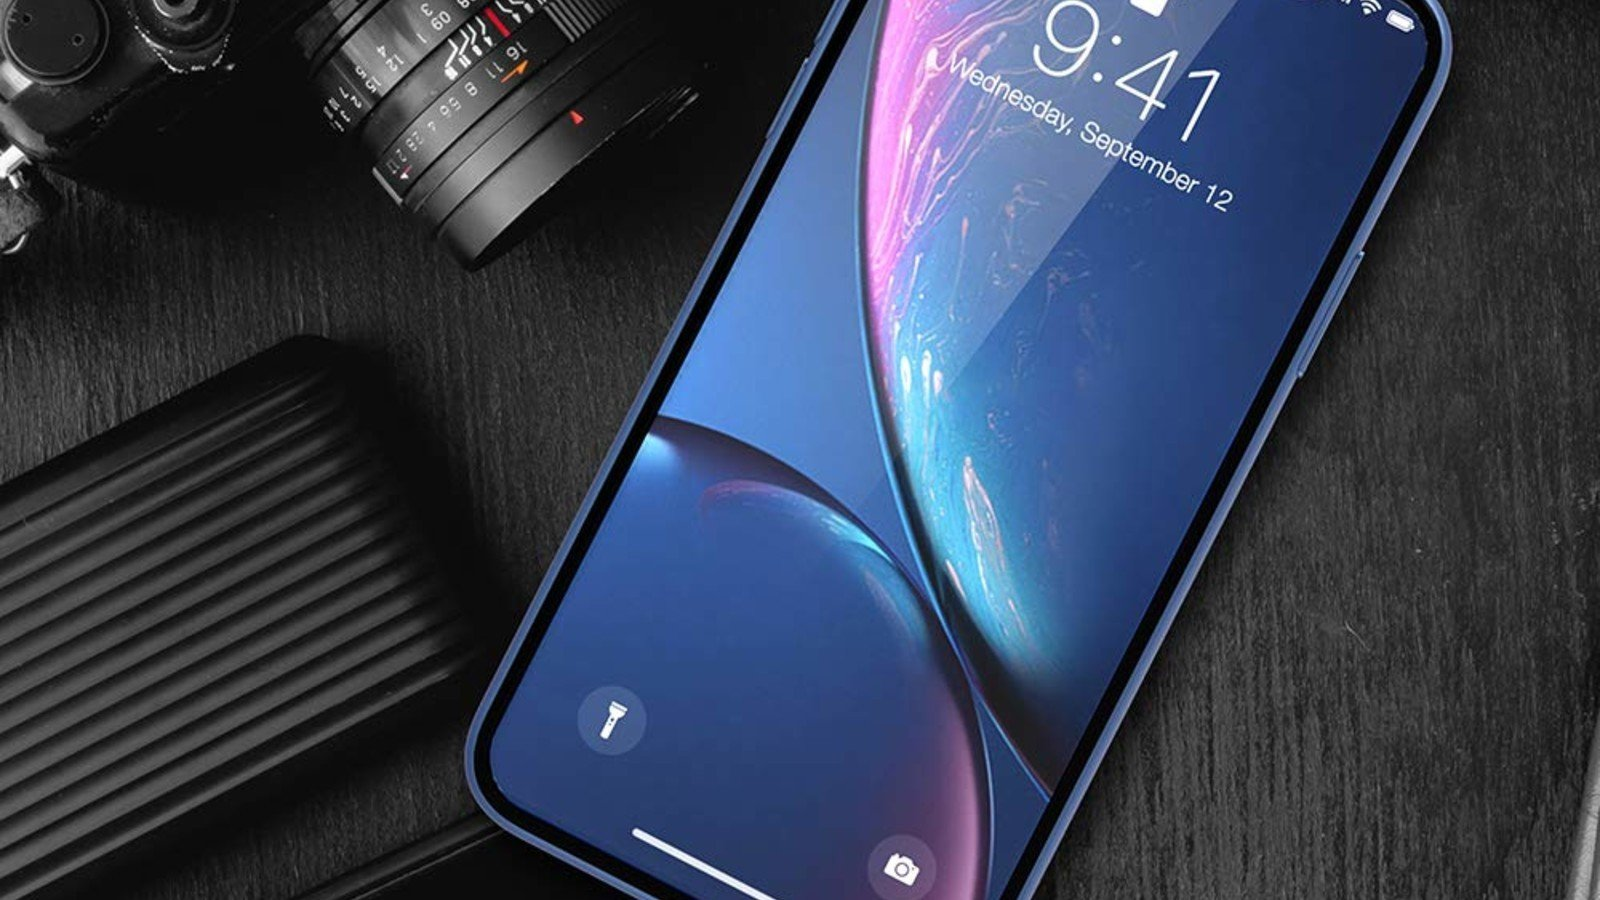 All about Tempered glass screen protectors